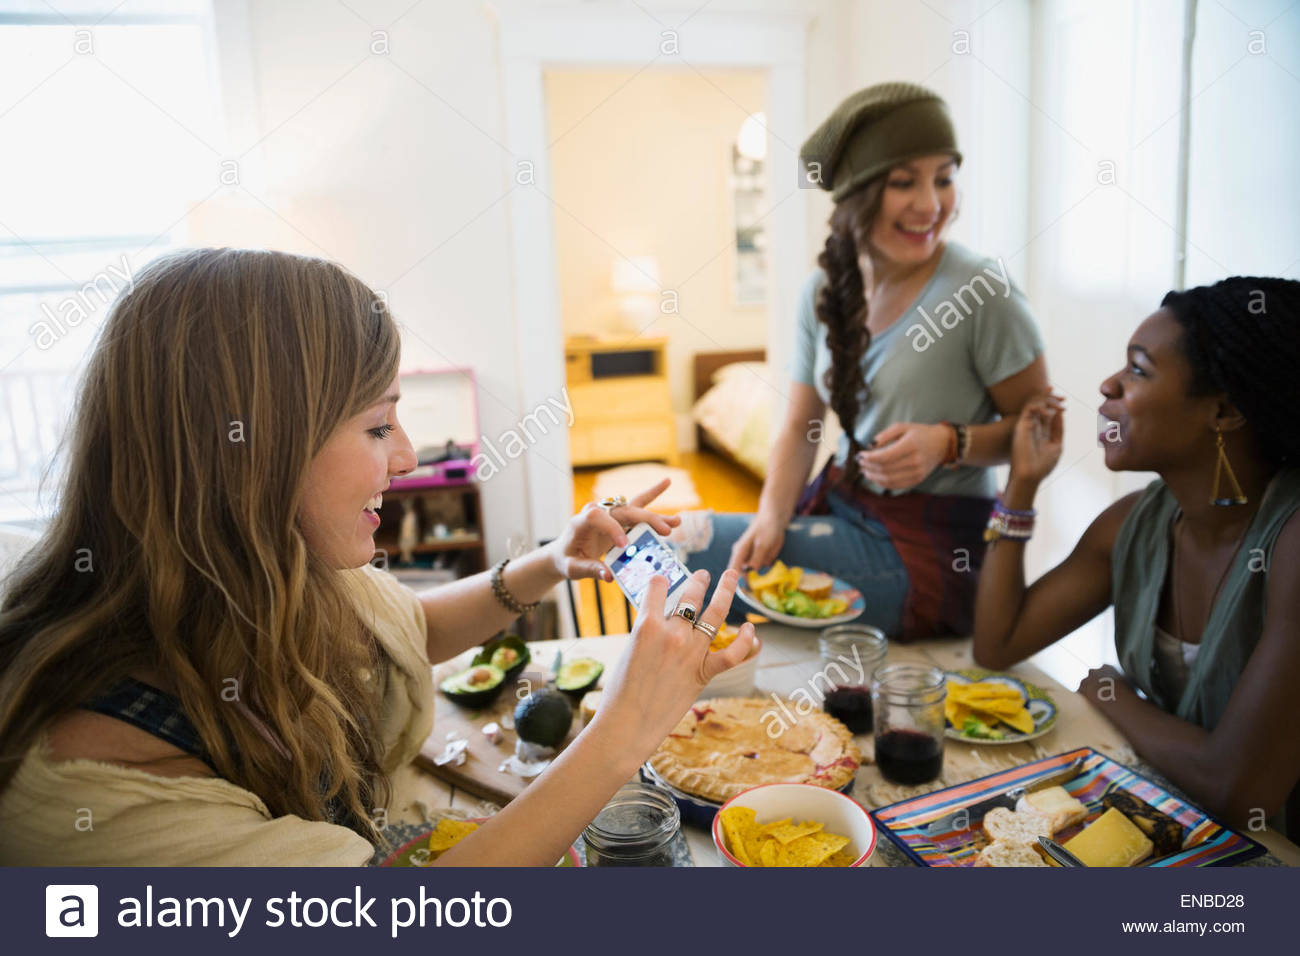 Woman photographing food with camera phone dining table - Stock Image